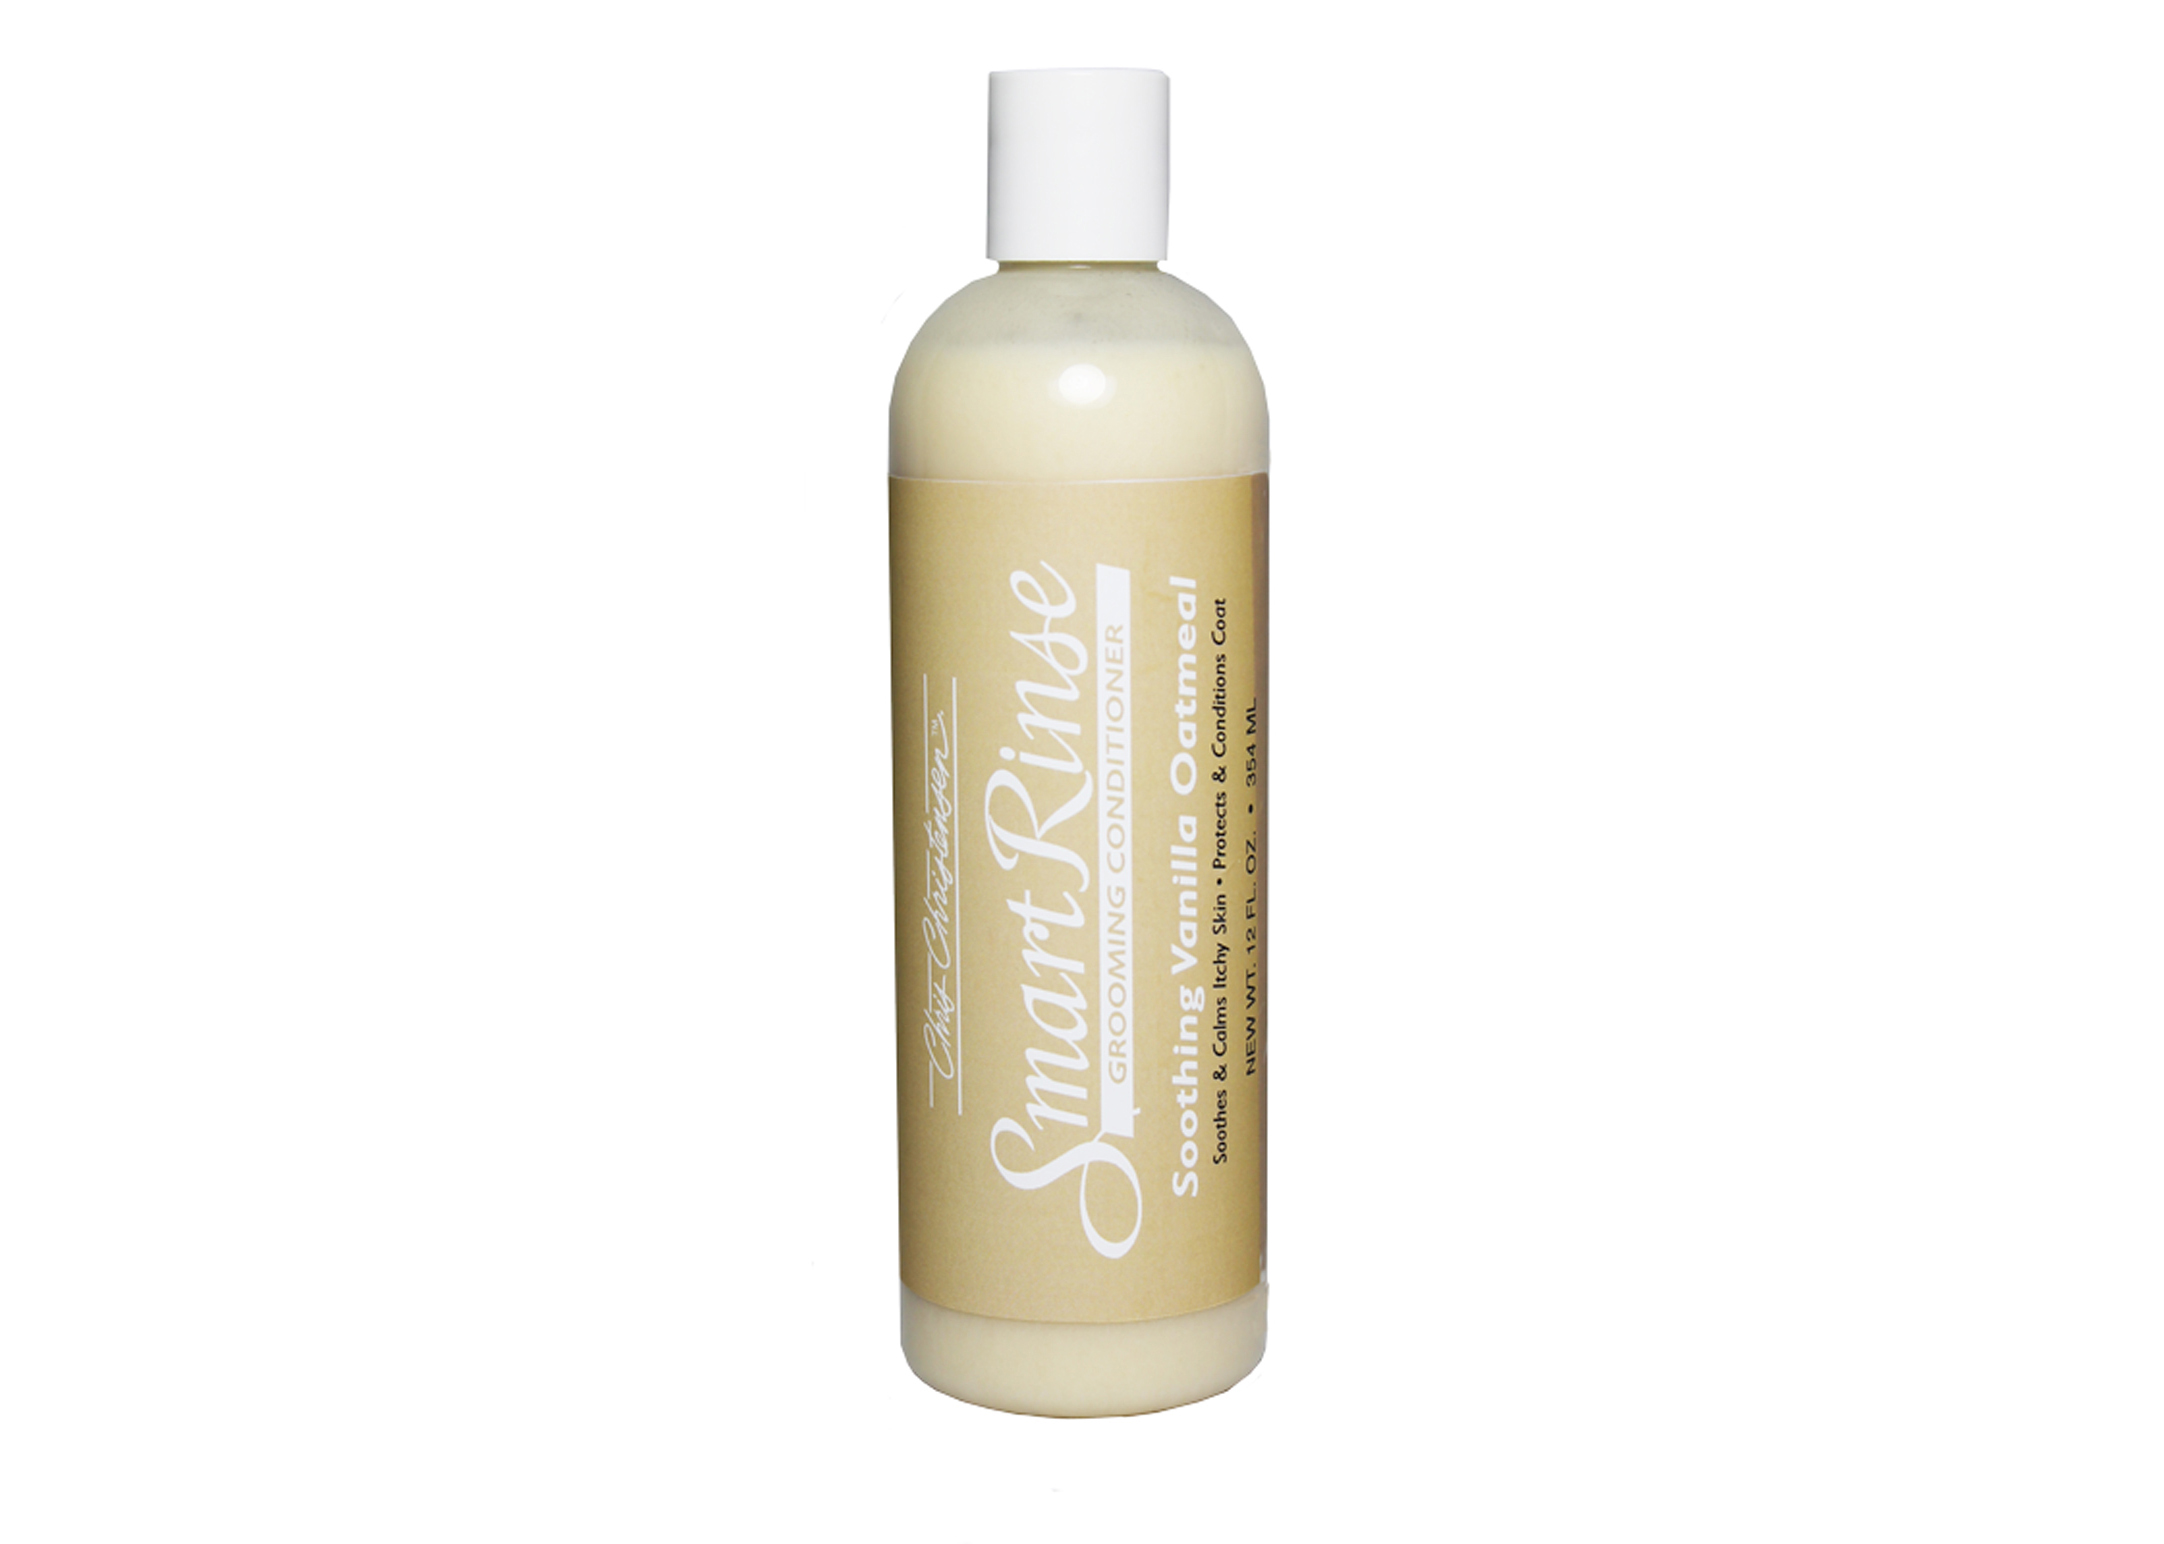 Chris Christensen Systems SmartRinse Vanilla Oatmeal Conditioner